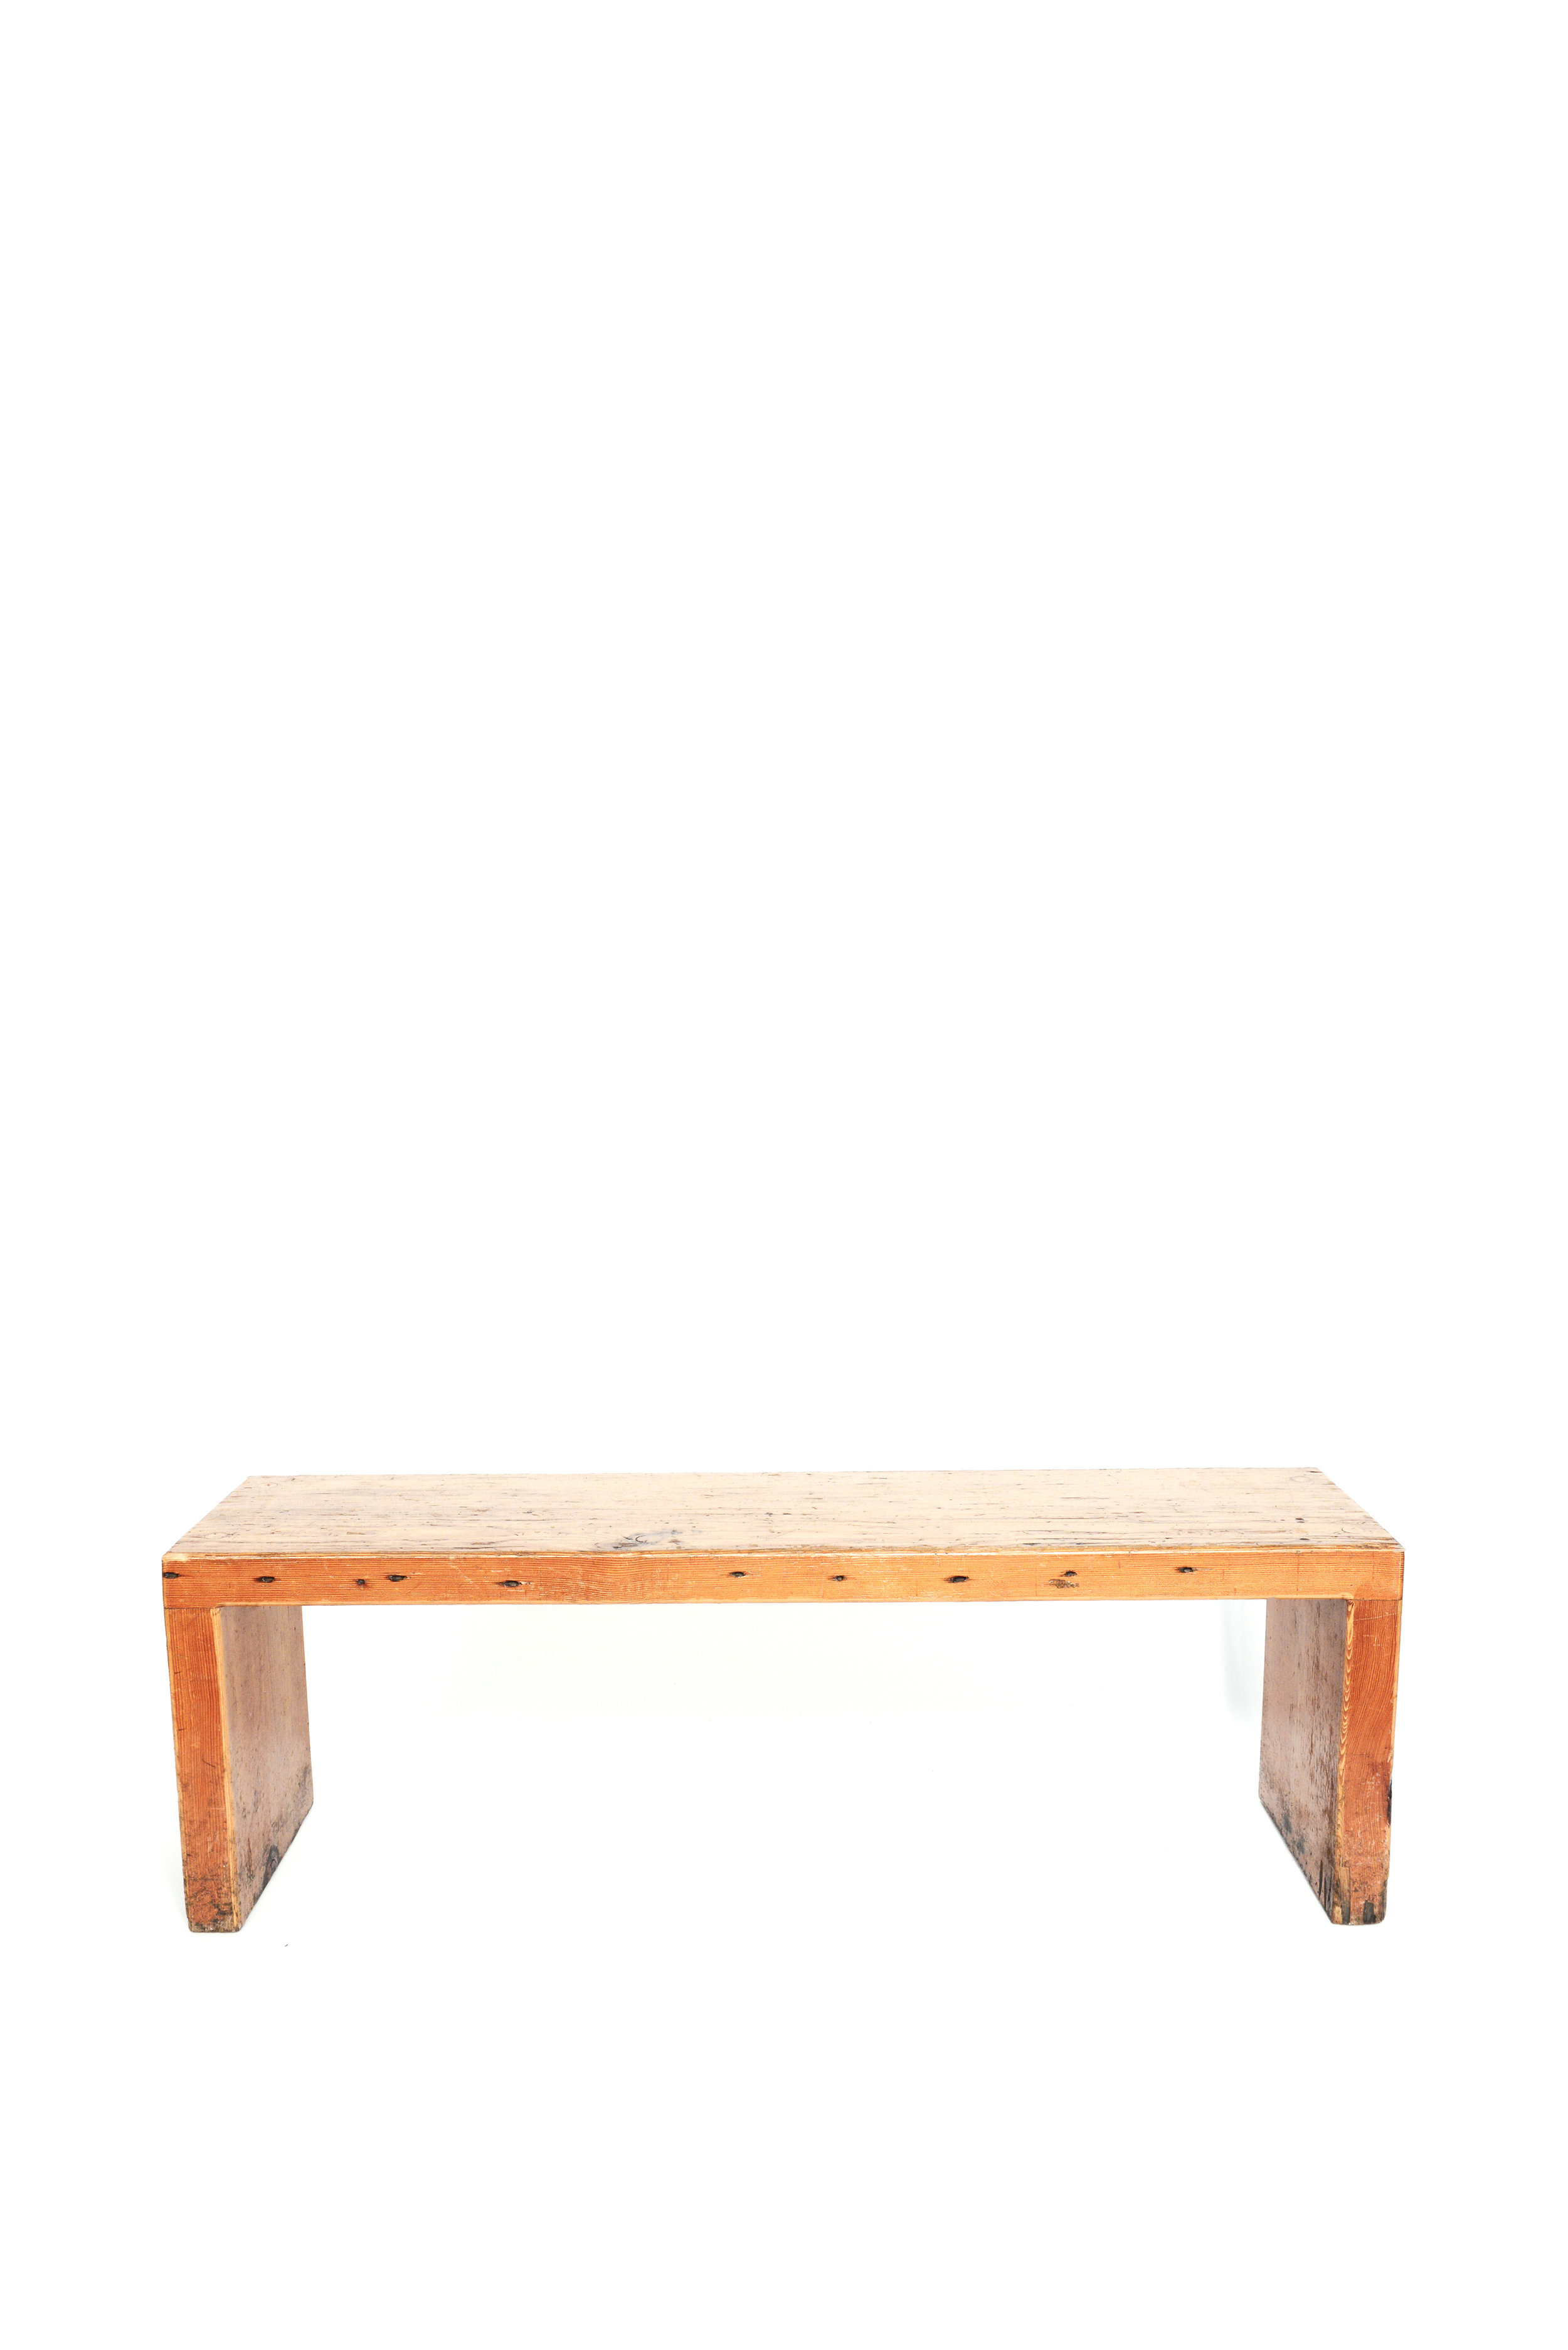 Reclaimed wooden bench qty. 6